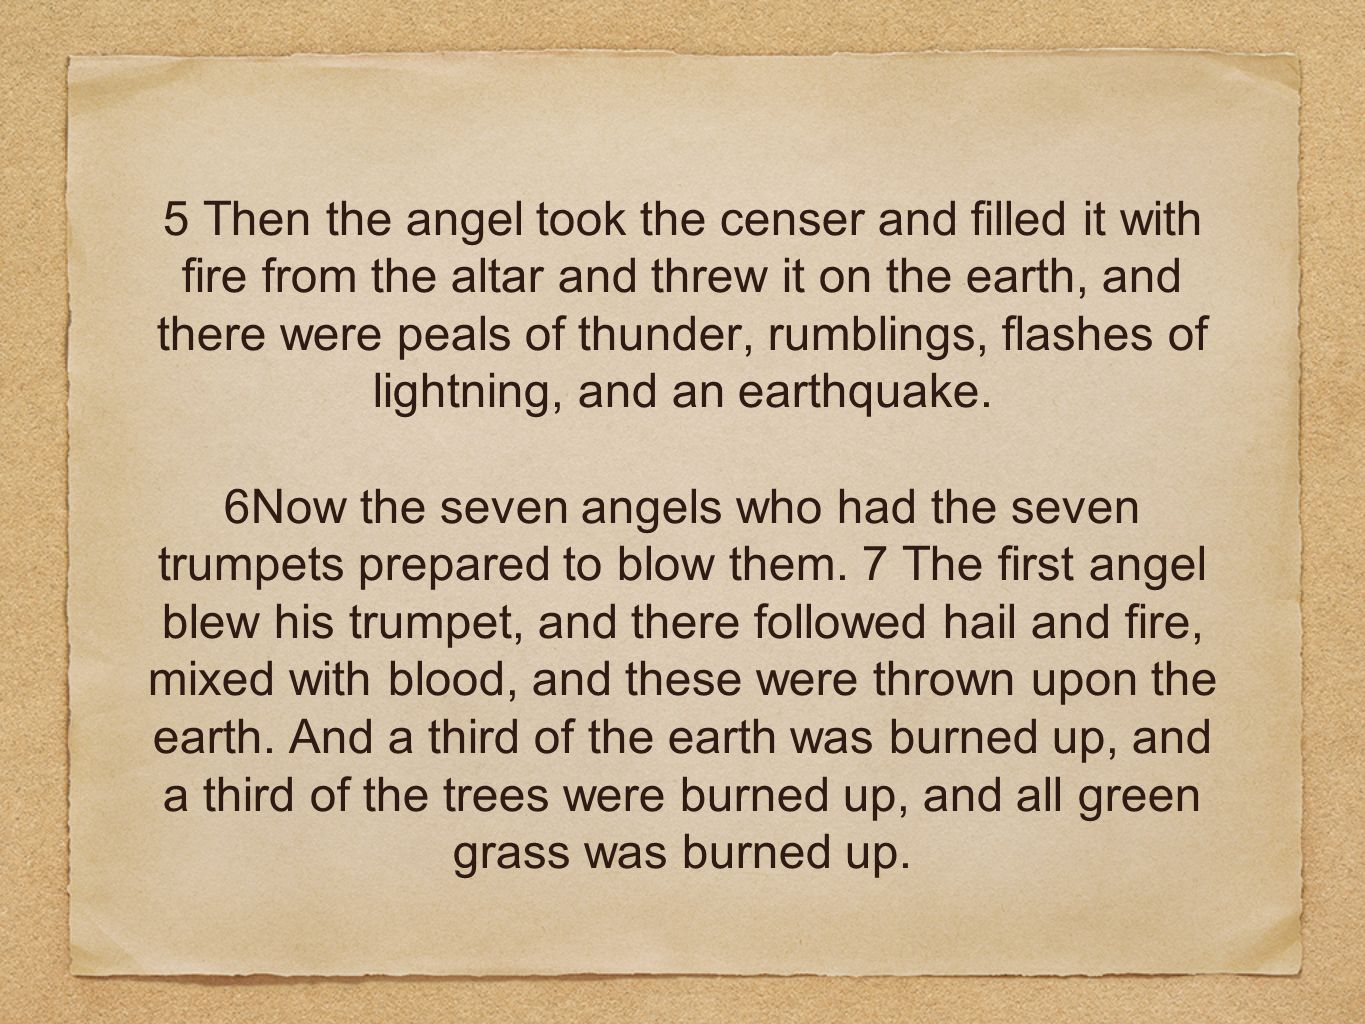 5 Then the angel took the censer and filled it with fire from the altar and threw it on the earth, and there were peals of thunder, rumblings, flashes of lightning, and an earthquake.